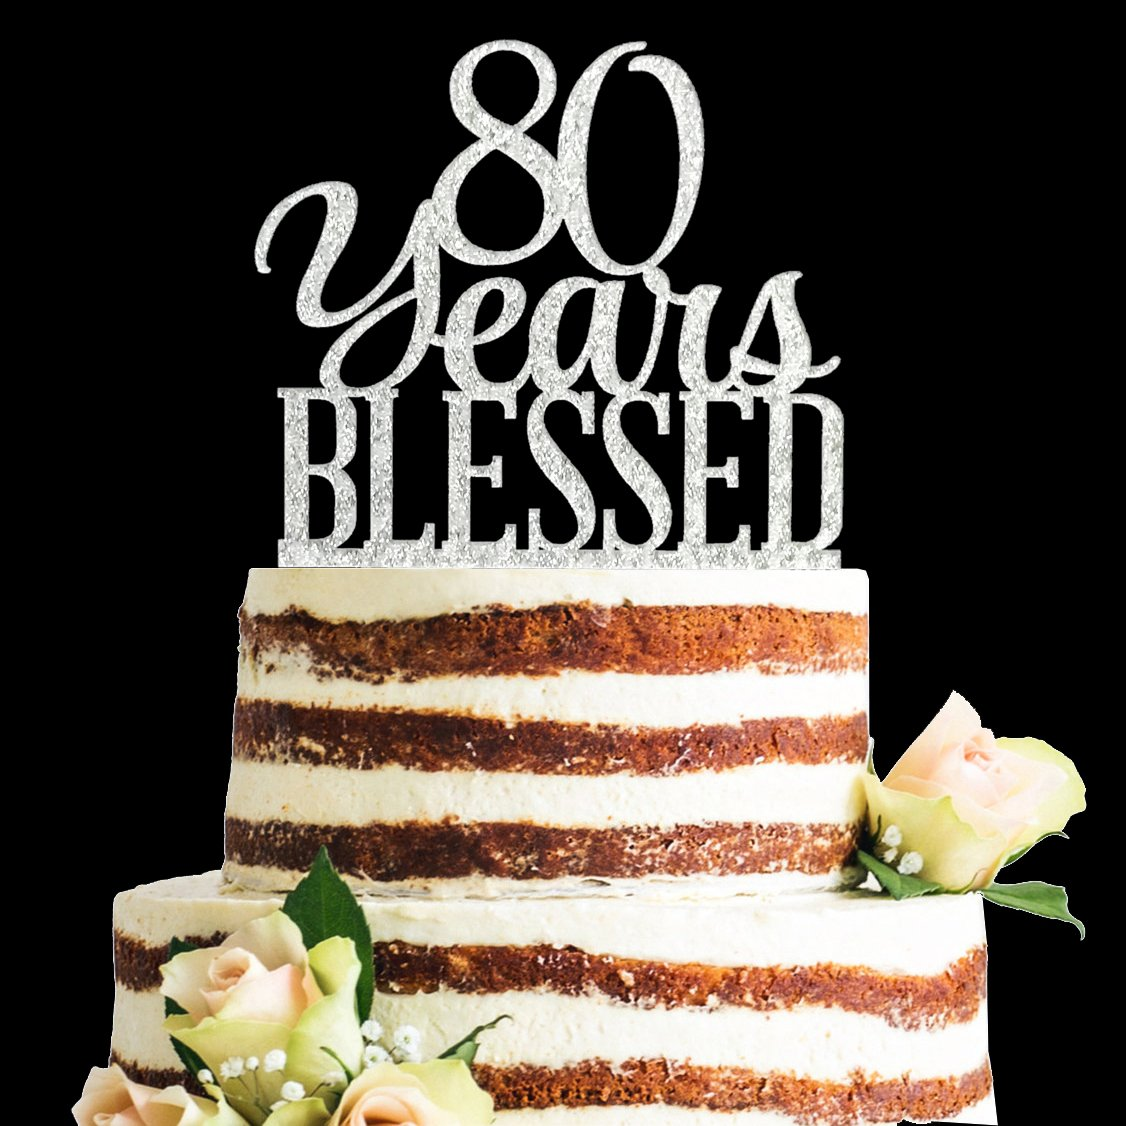 Glitter Silver Acrylic 80 Years Blessed Cake Topper, 80th Birthday Anniversary Party Decorations (80, Silver)